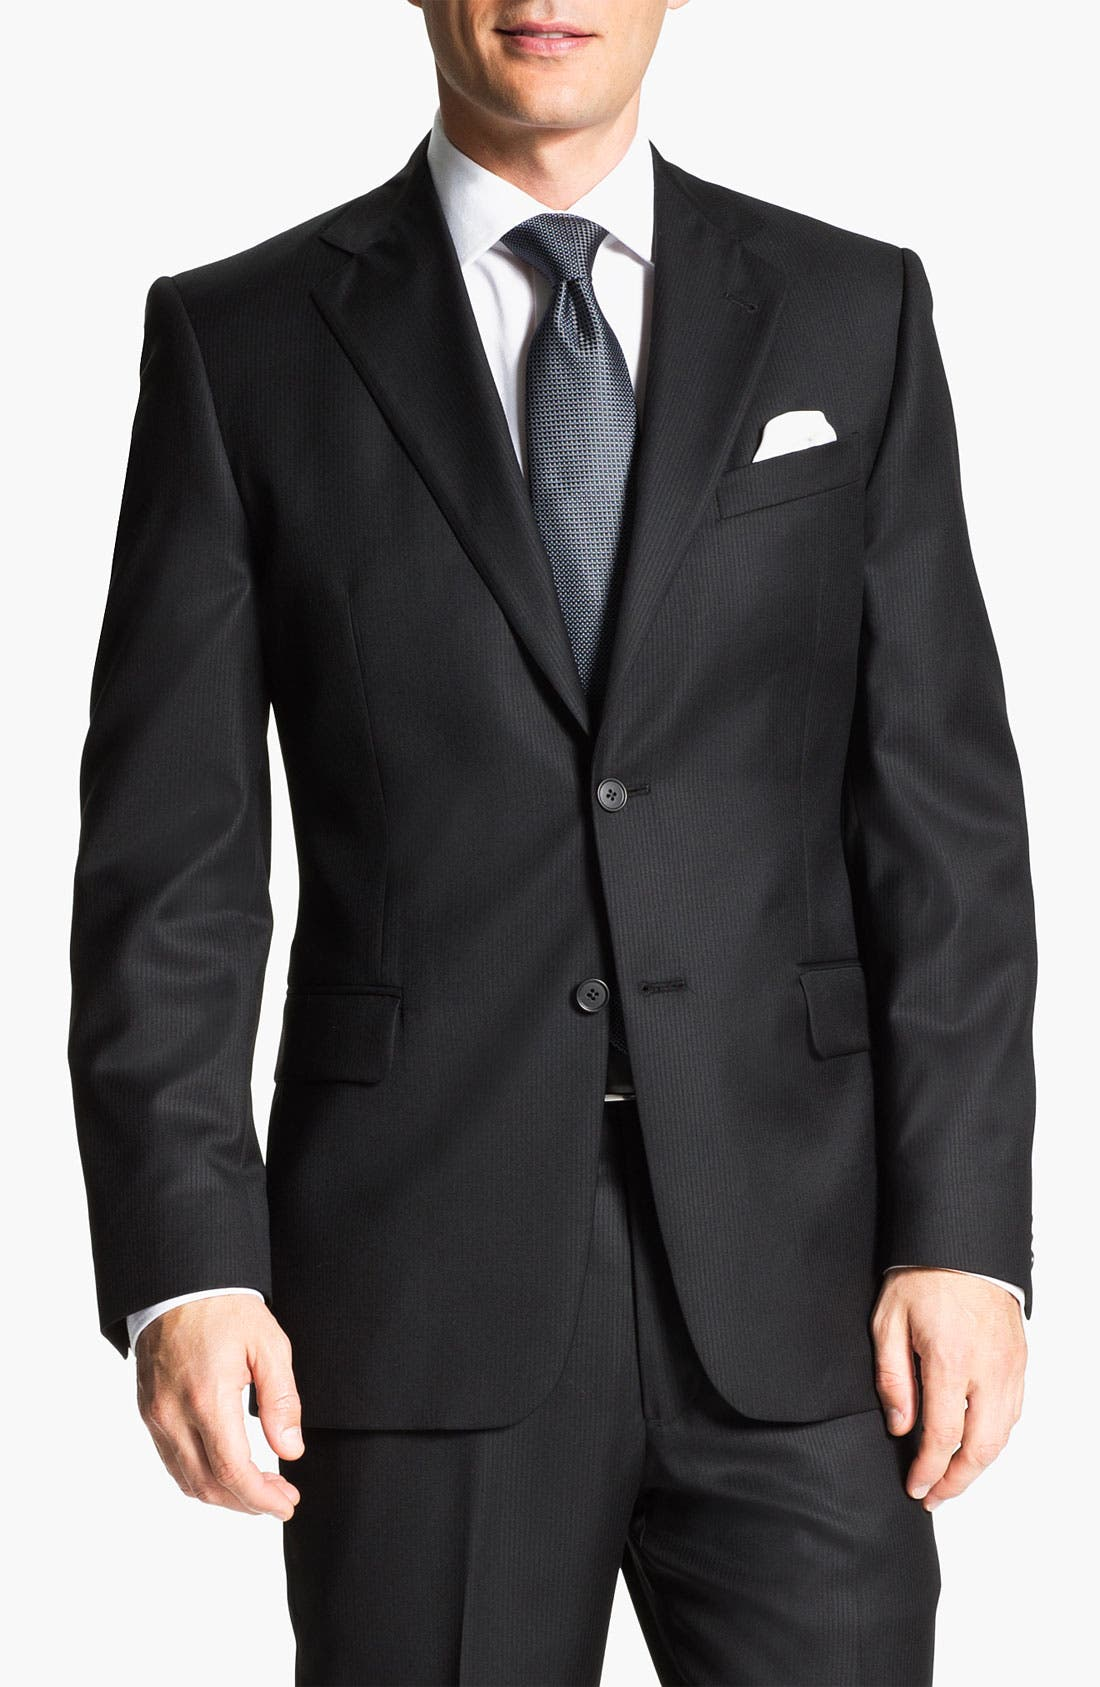 Main Image - Joseph Abboud Black Wool Suit